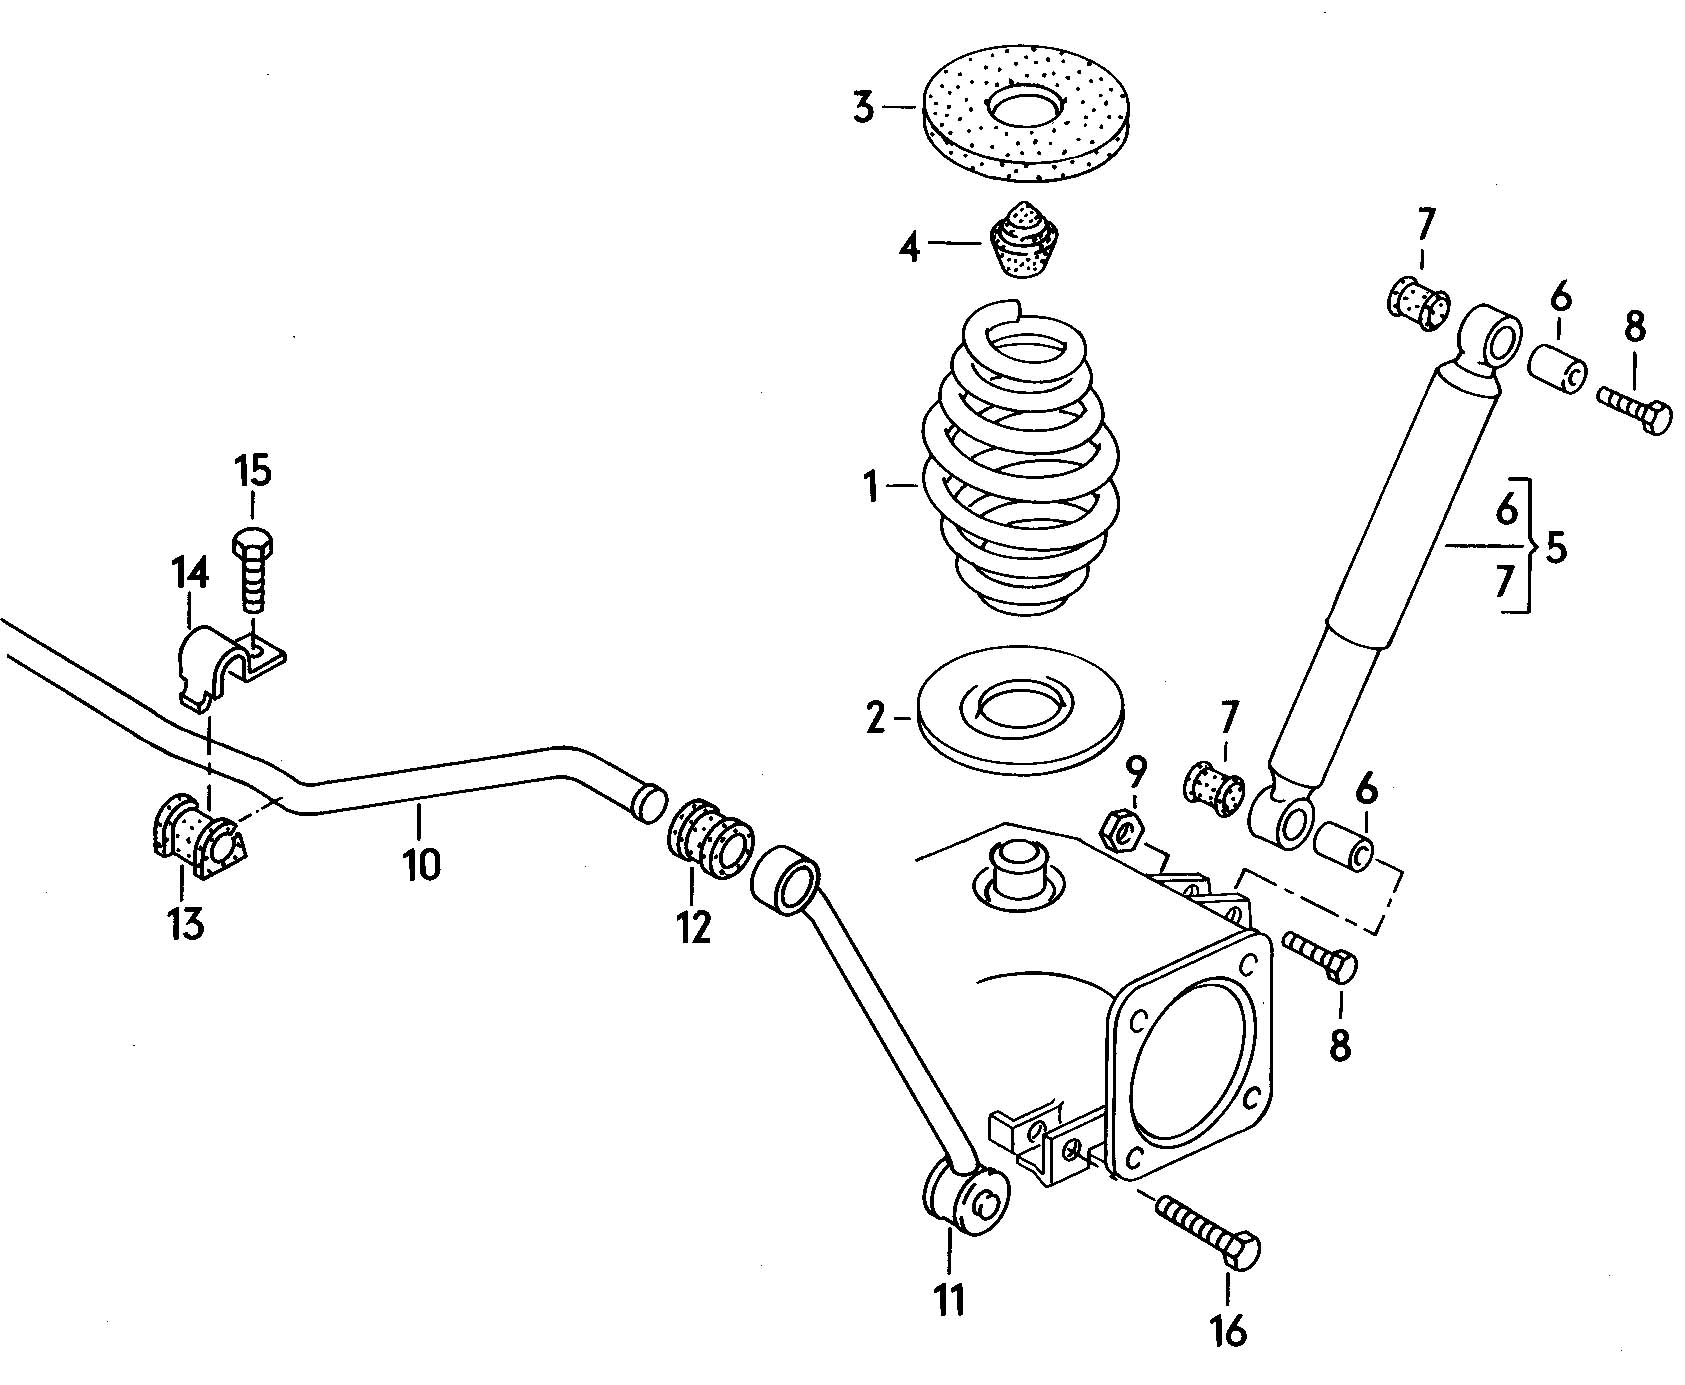 1985 vw cabriolet wiring diagram